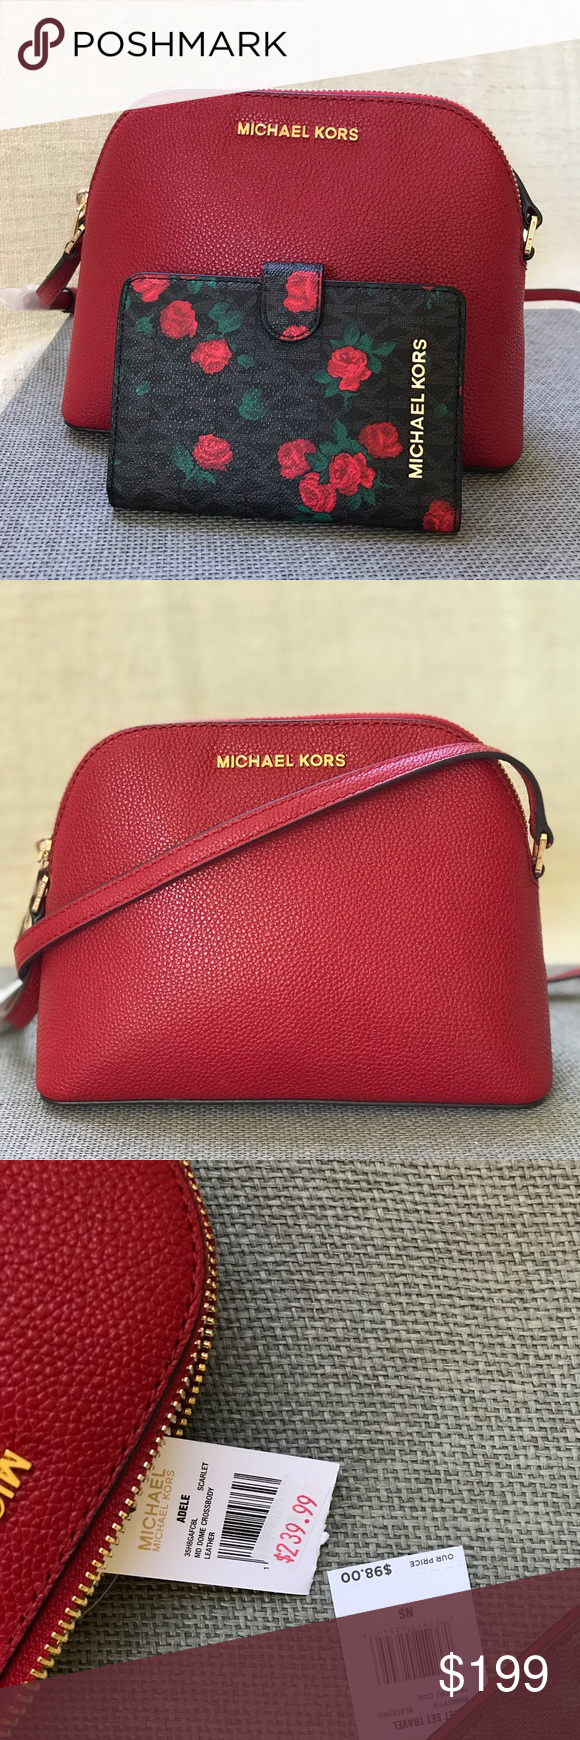 05b9836f8441b0 Michael Kors Purses. ♥️MICHAEL KORS SET Order now ❗ Same day shipping ✅  Make an offer Michael